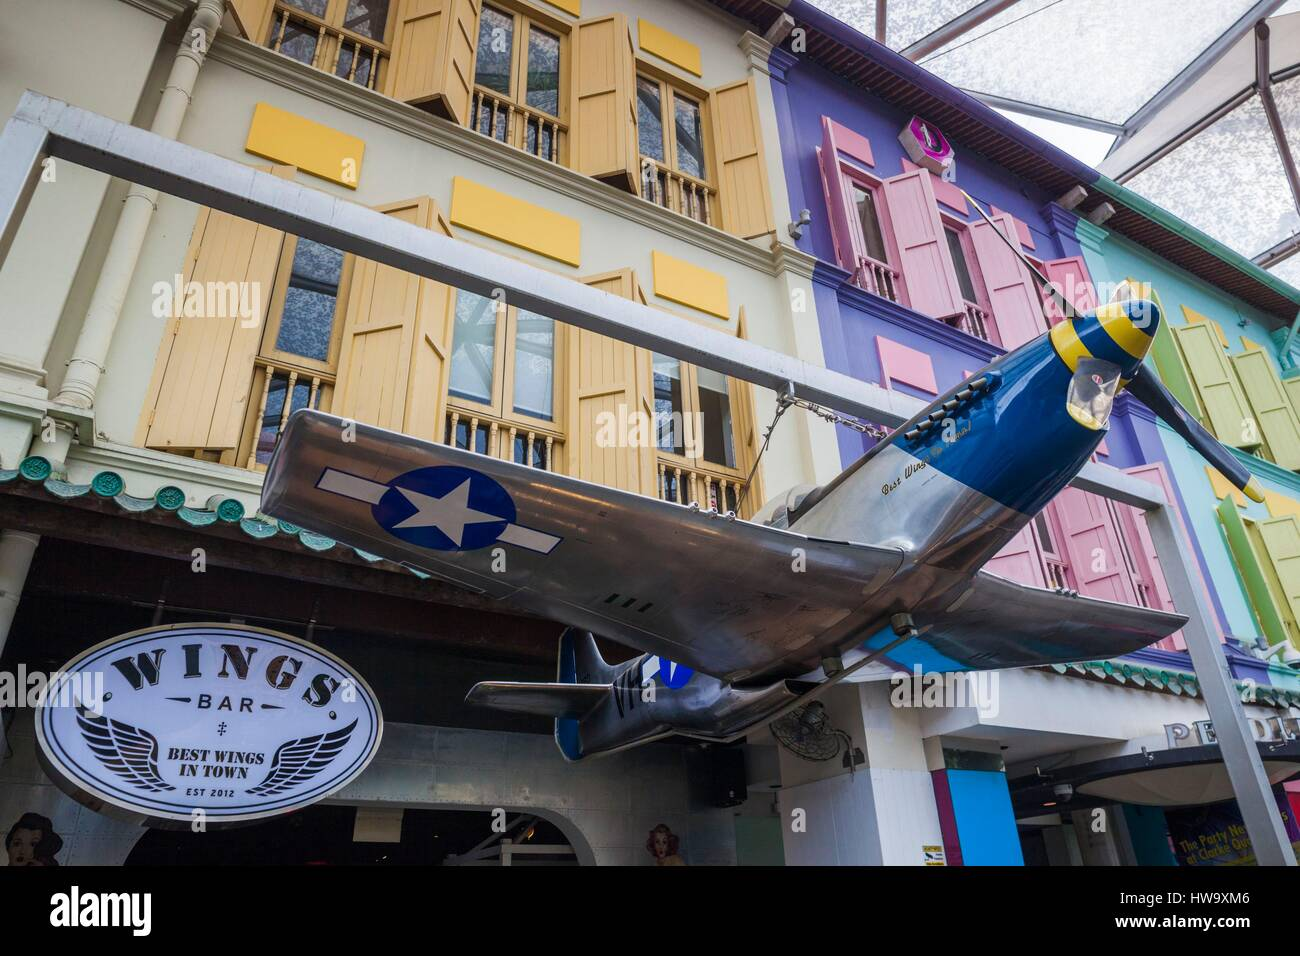 Singapore, Clarke Quay, entertainment district, Wings Bar with model of P-51 Mustang, WW2 aircraft Stock Photo